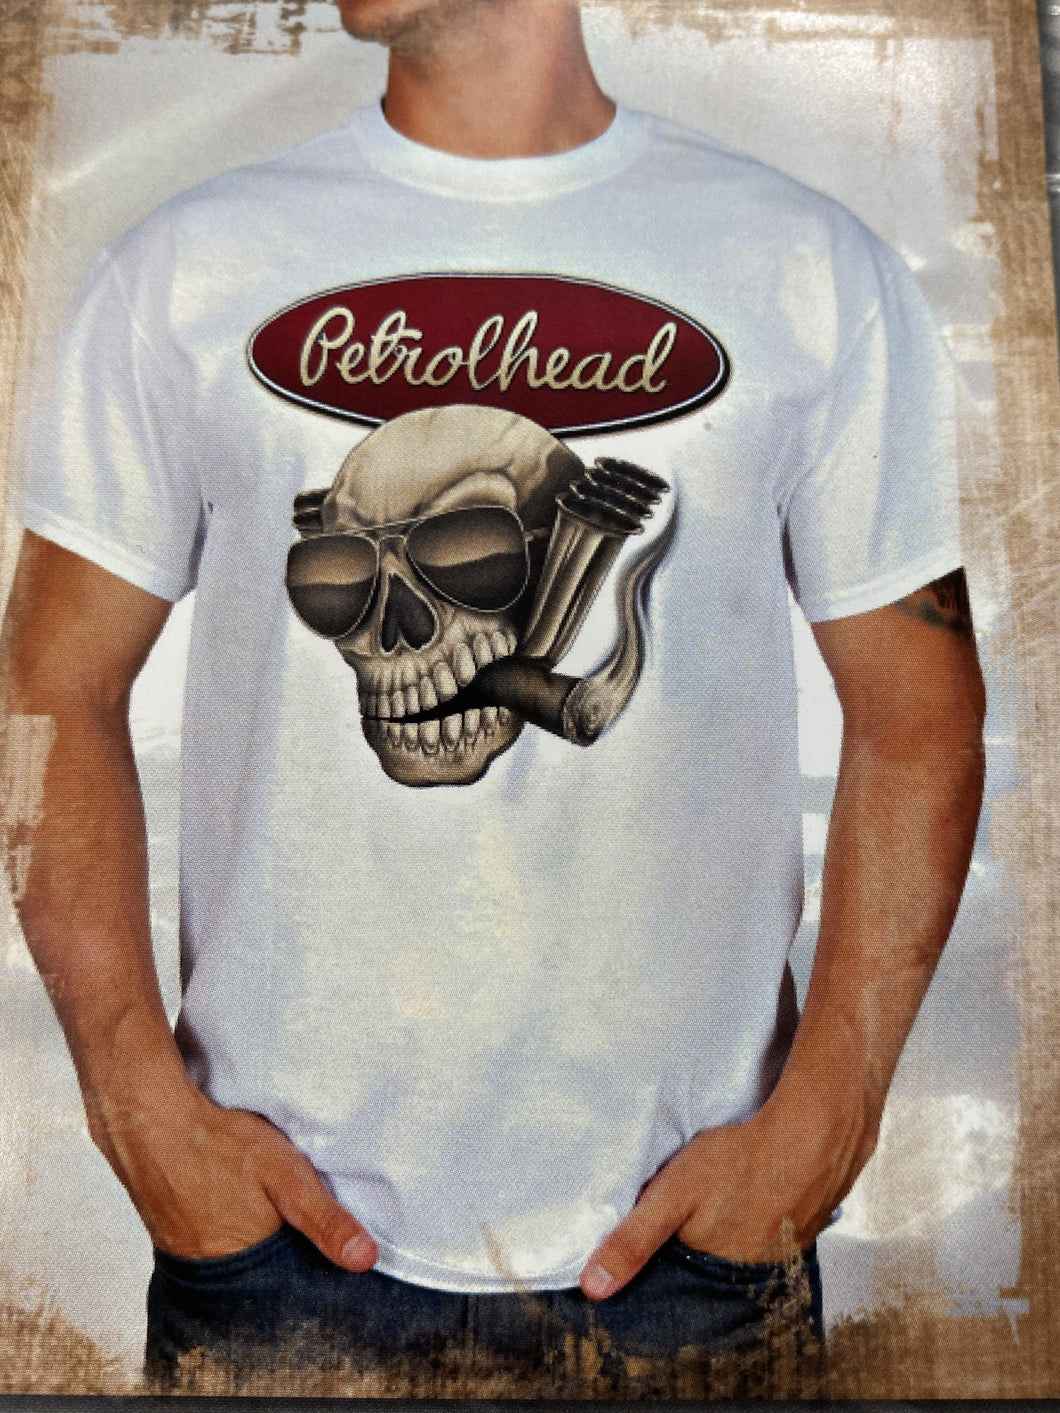 White cotton tee shirt with maroon signature Petrolhead logo